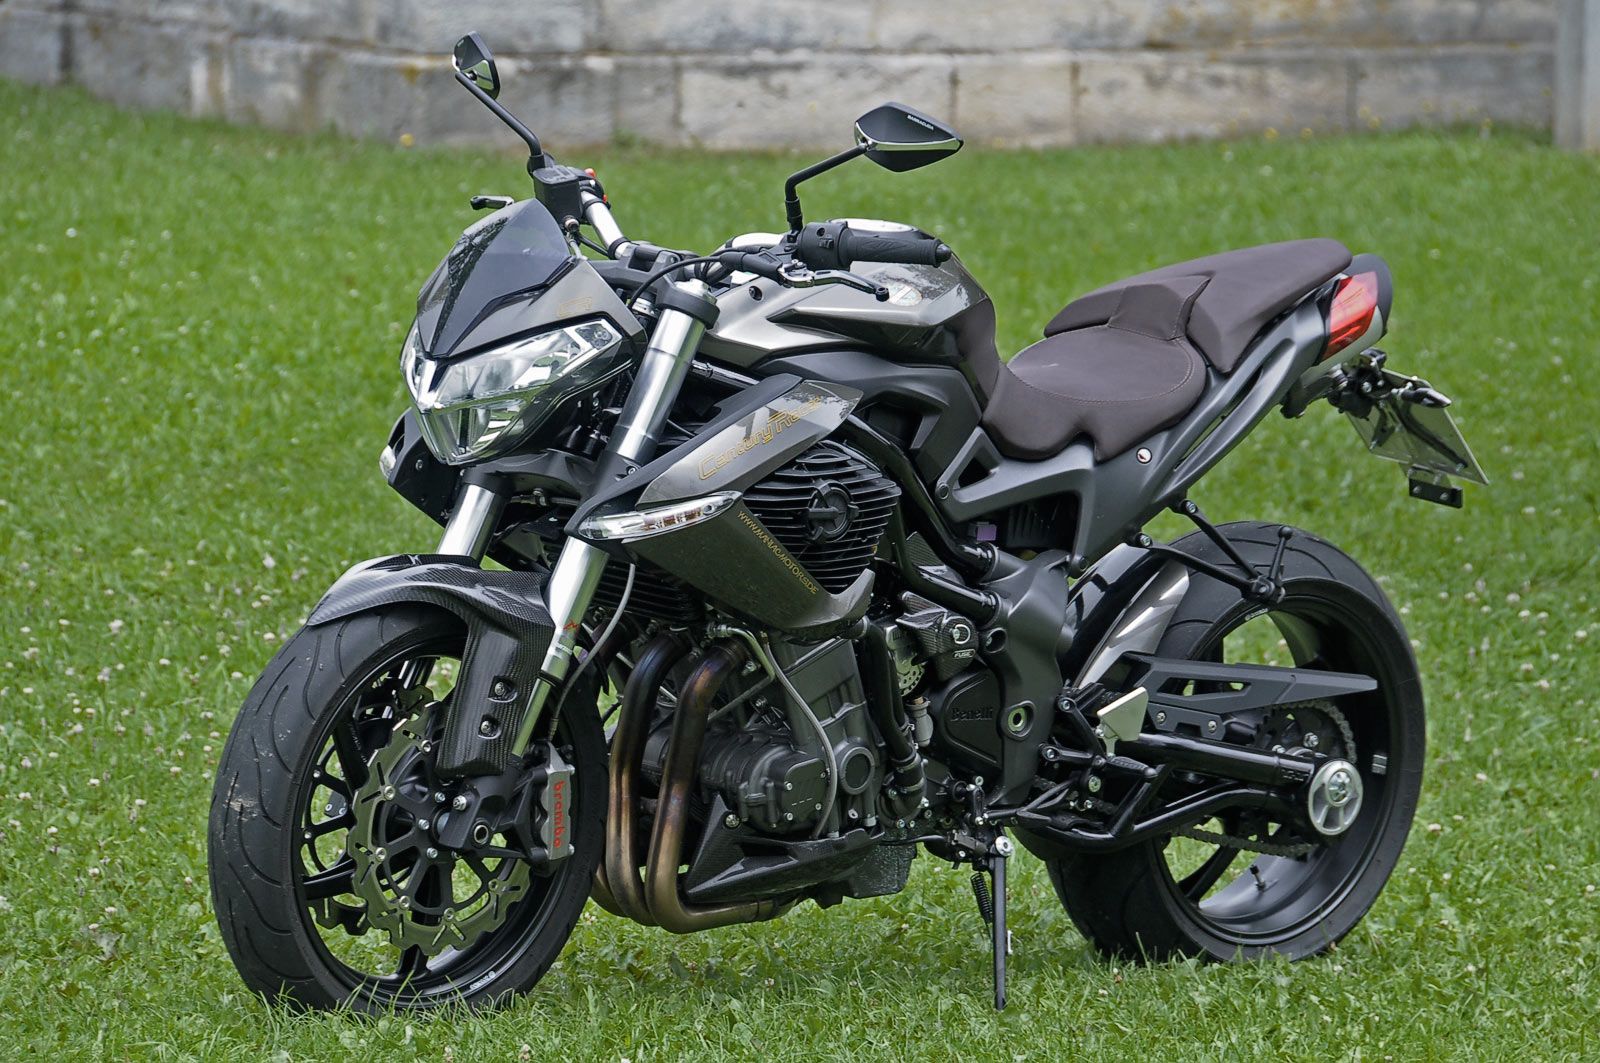 Benelli Century Racer 1130 2011 images #76405